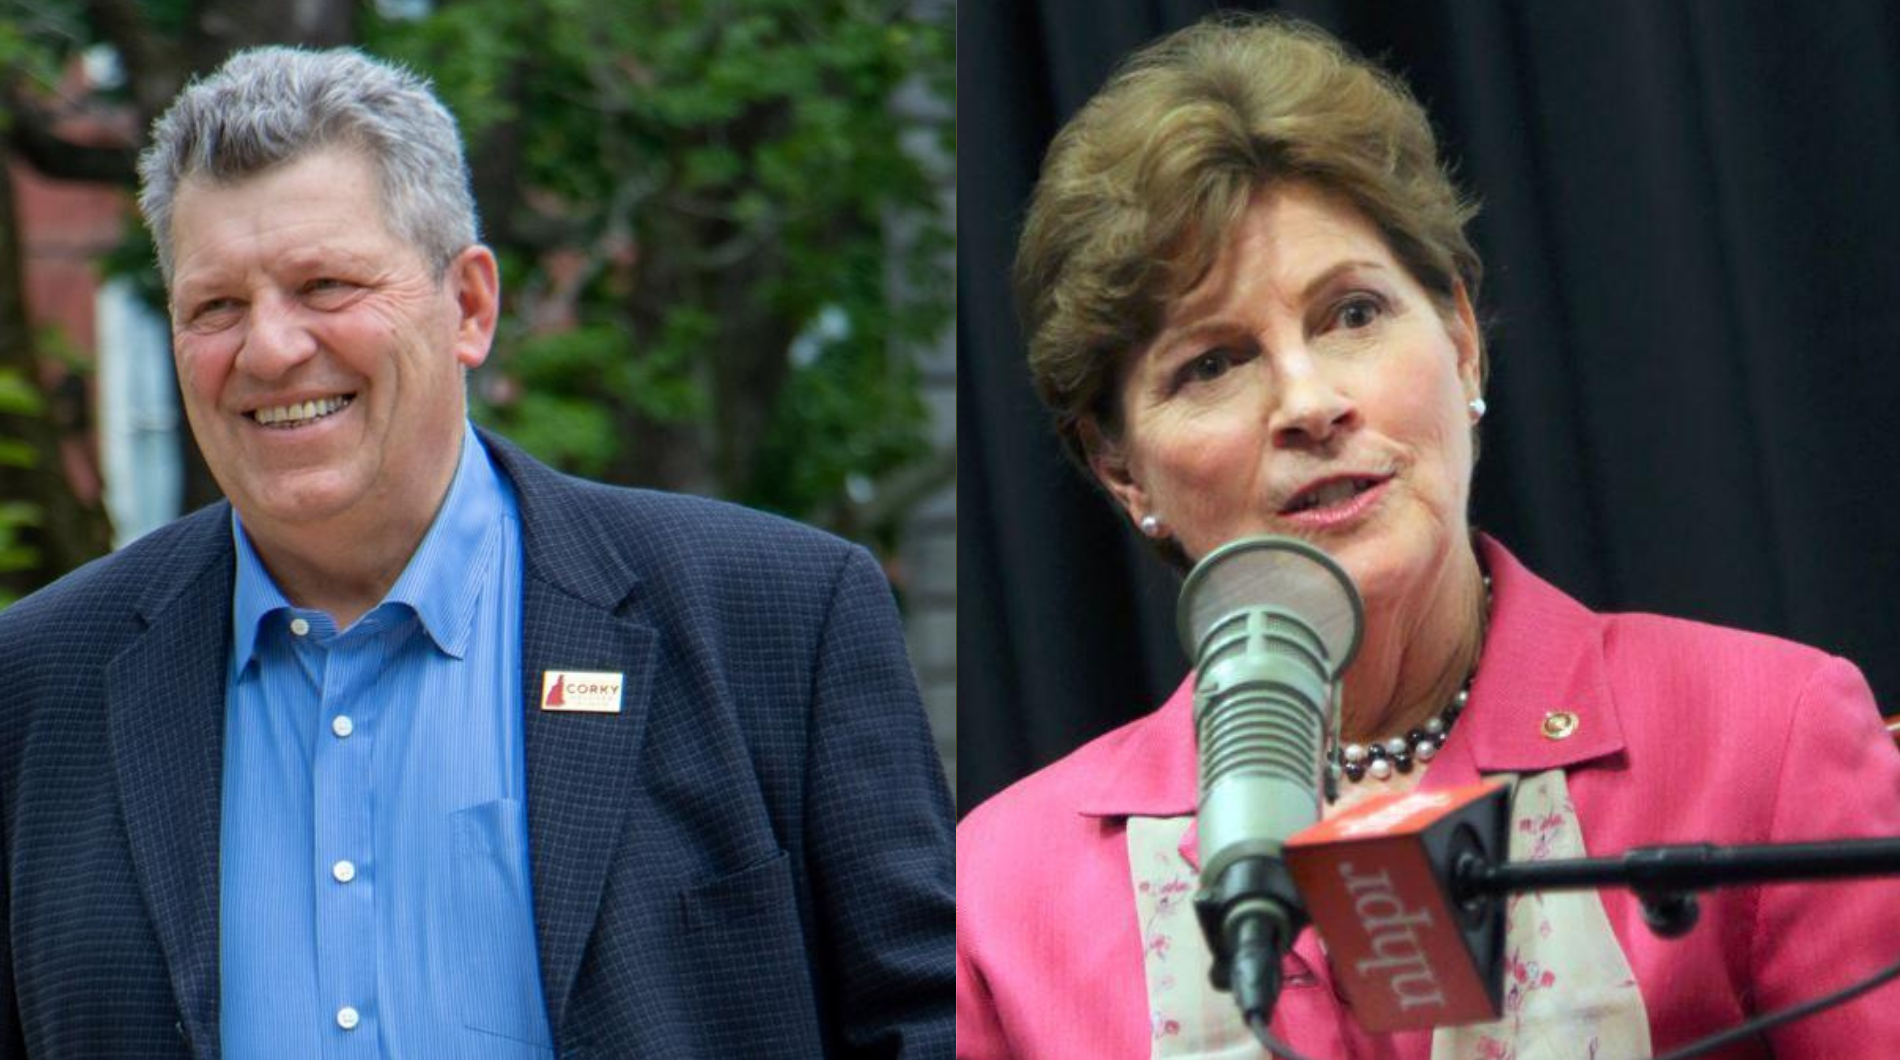 Watch or Listen: Corky Messner And Jeanne Shaheen Square Off On NHPR's U.S. Senate Debate